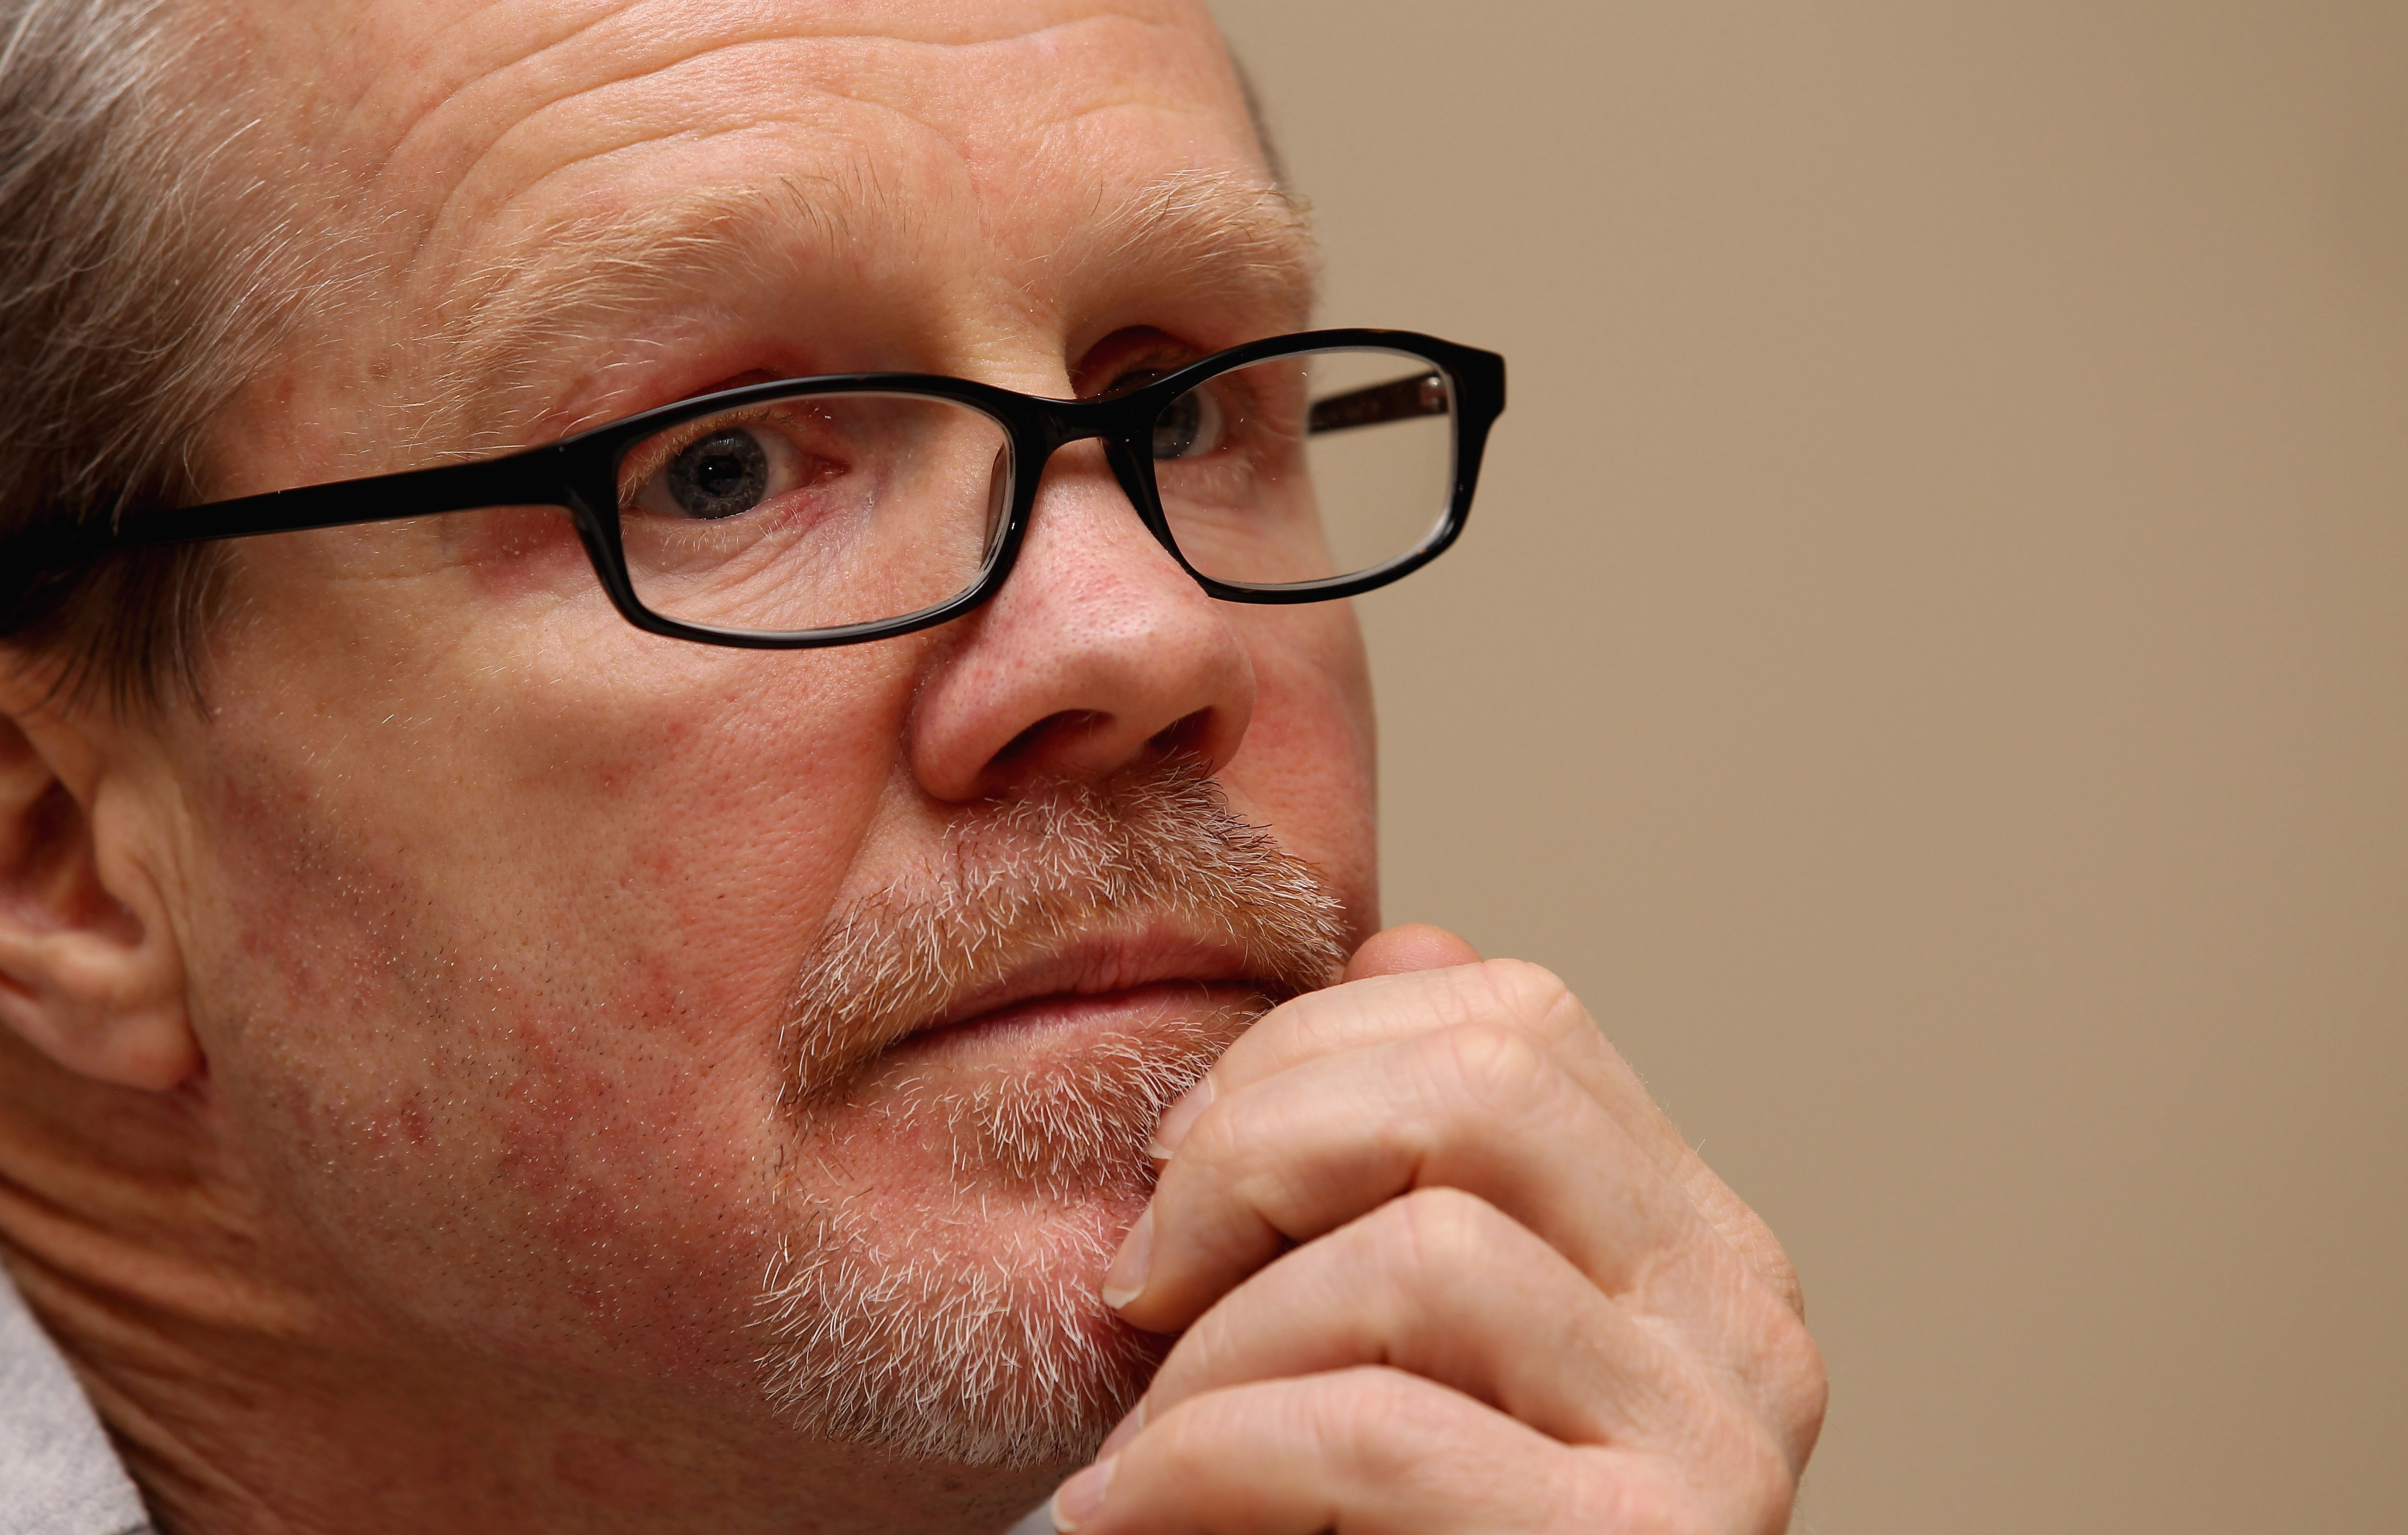 I have two wonderful articles highlighting Freddie Roach's desire to combat and dethrone Floyd Mayweather Jr.